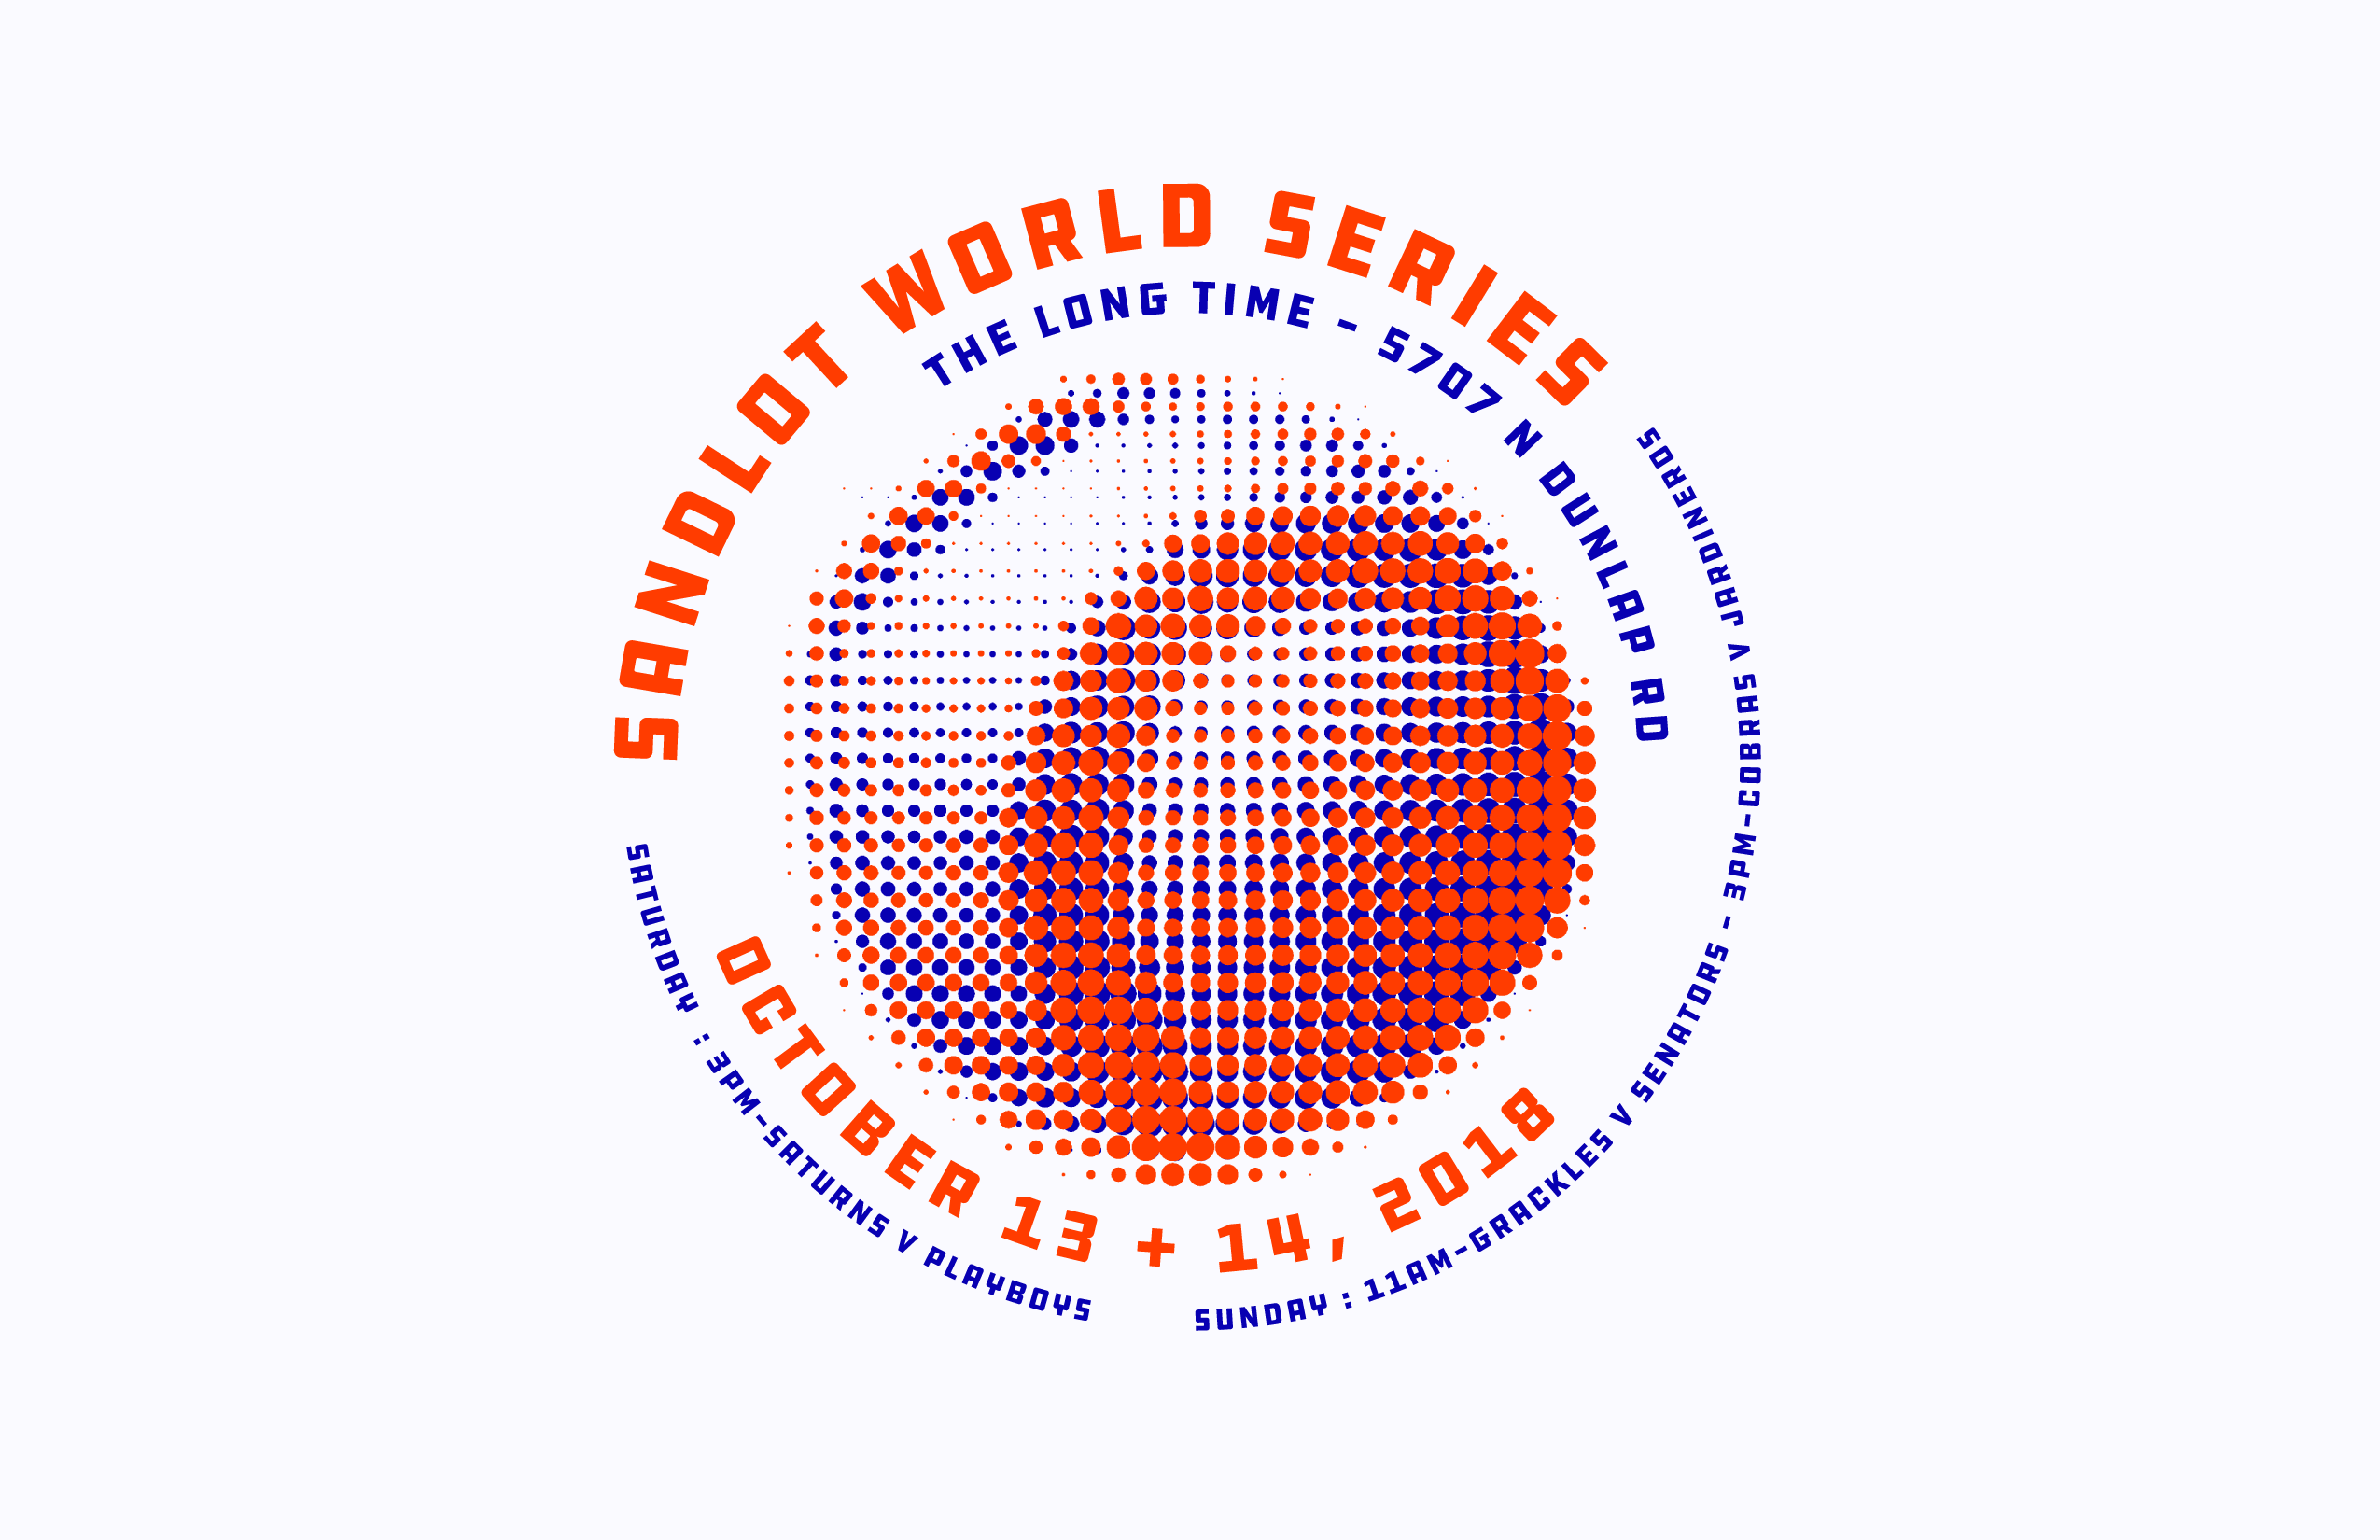 SANDLOT WORLD SERIES